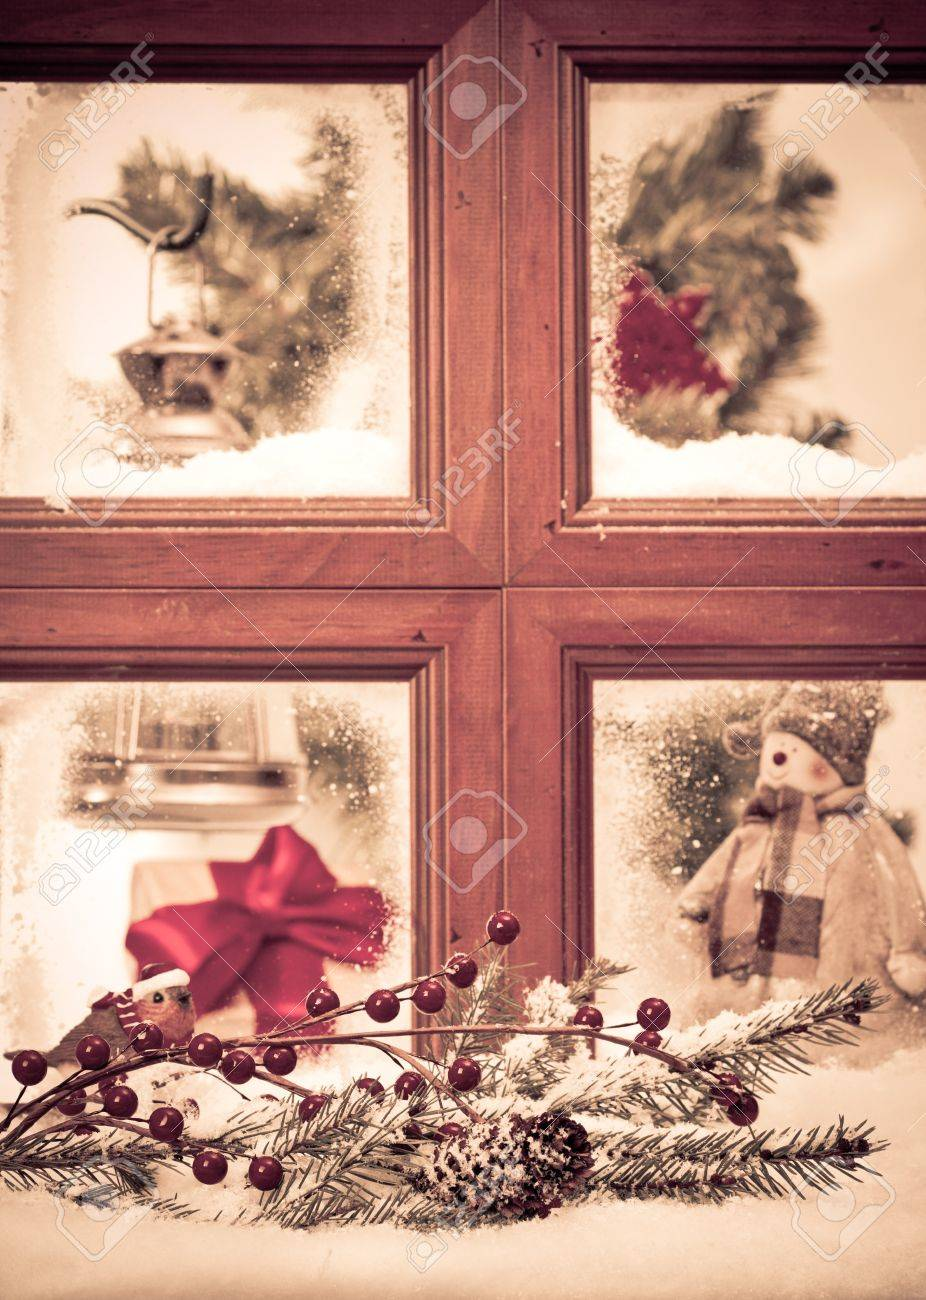 Vintage Christmas window with snowy scene, focus on fir cone and branch in front of window Stock Photo - 11151174